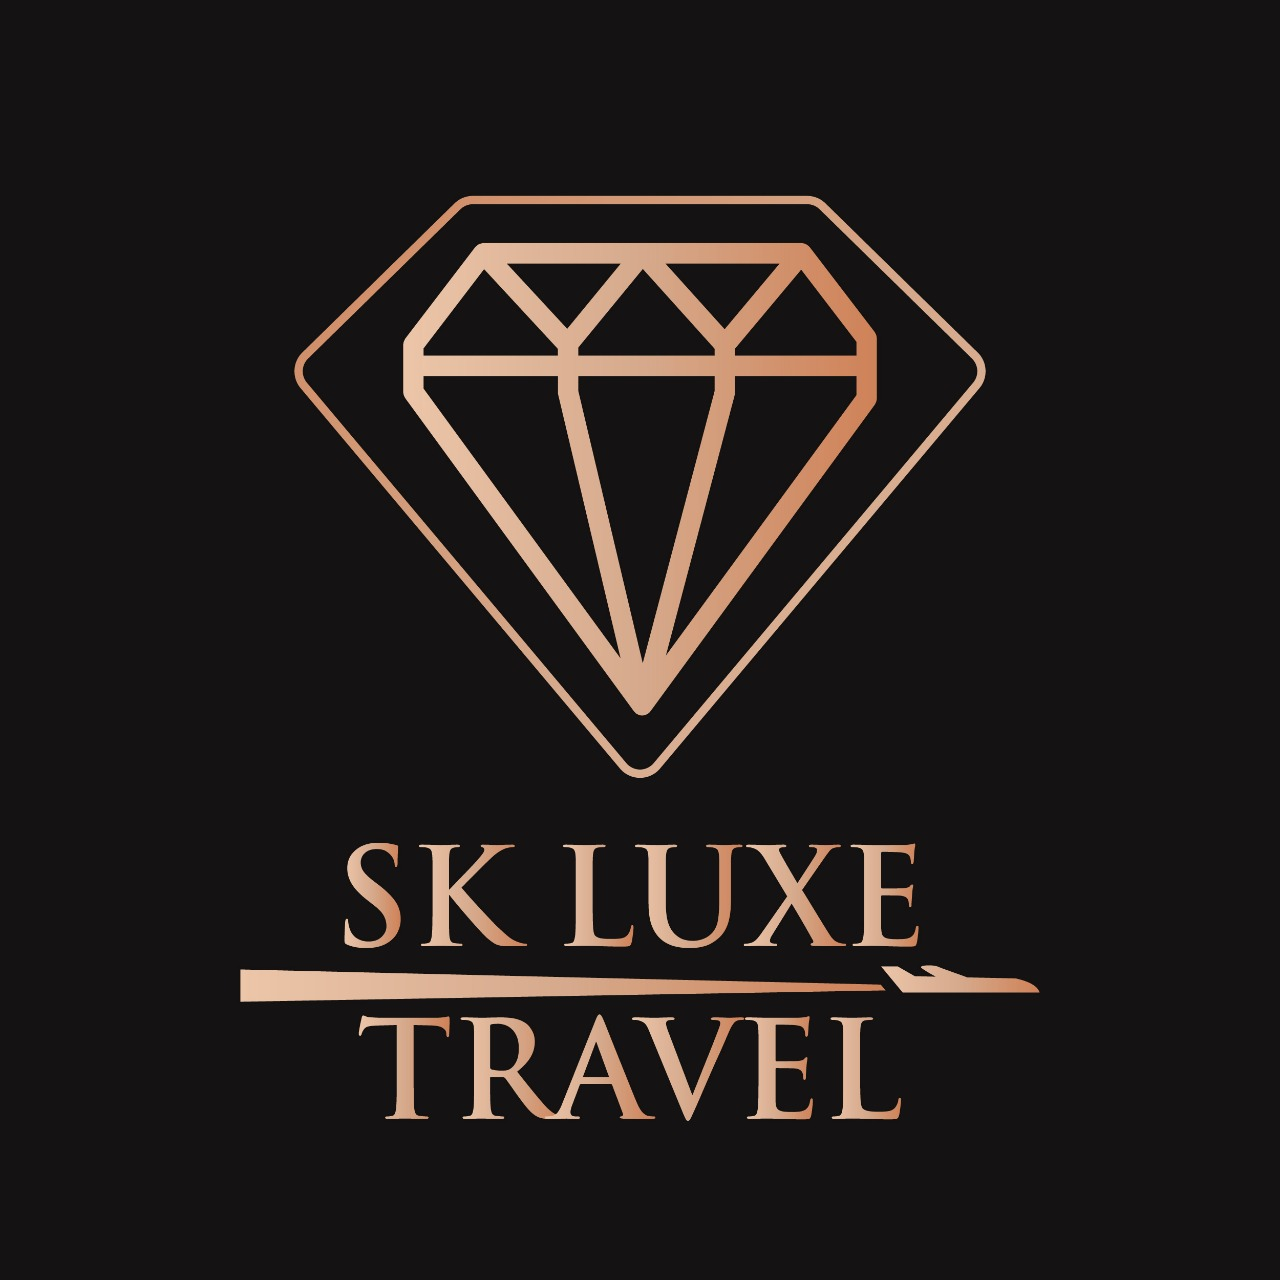 SK Luxe Travel